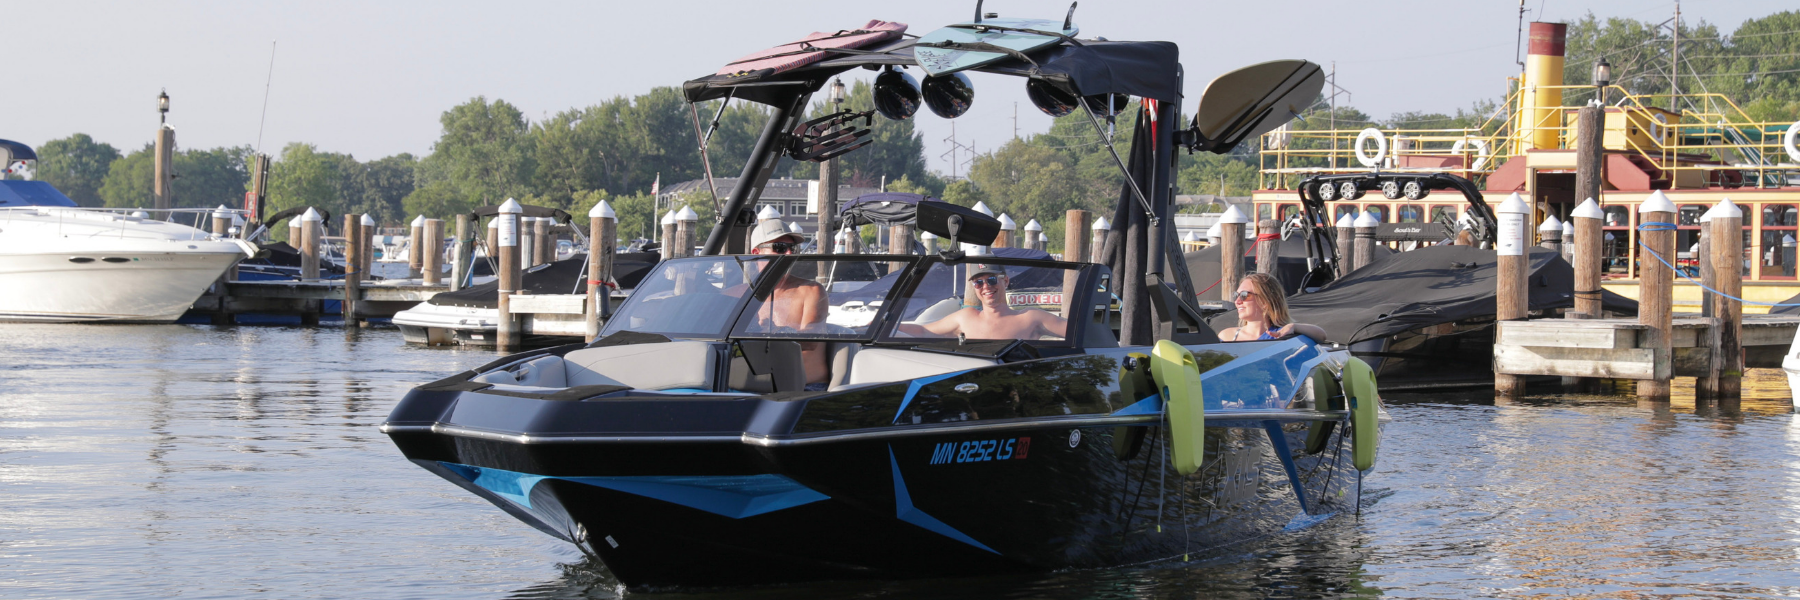 Boating Lake Life And Wakesurfing Blog By Mission Boat Gear